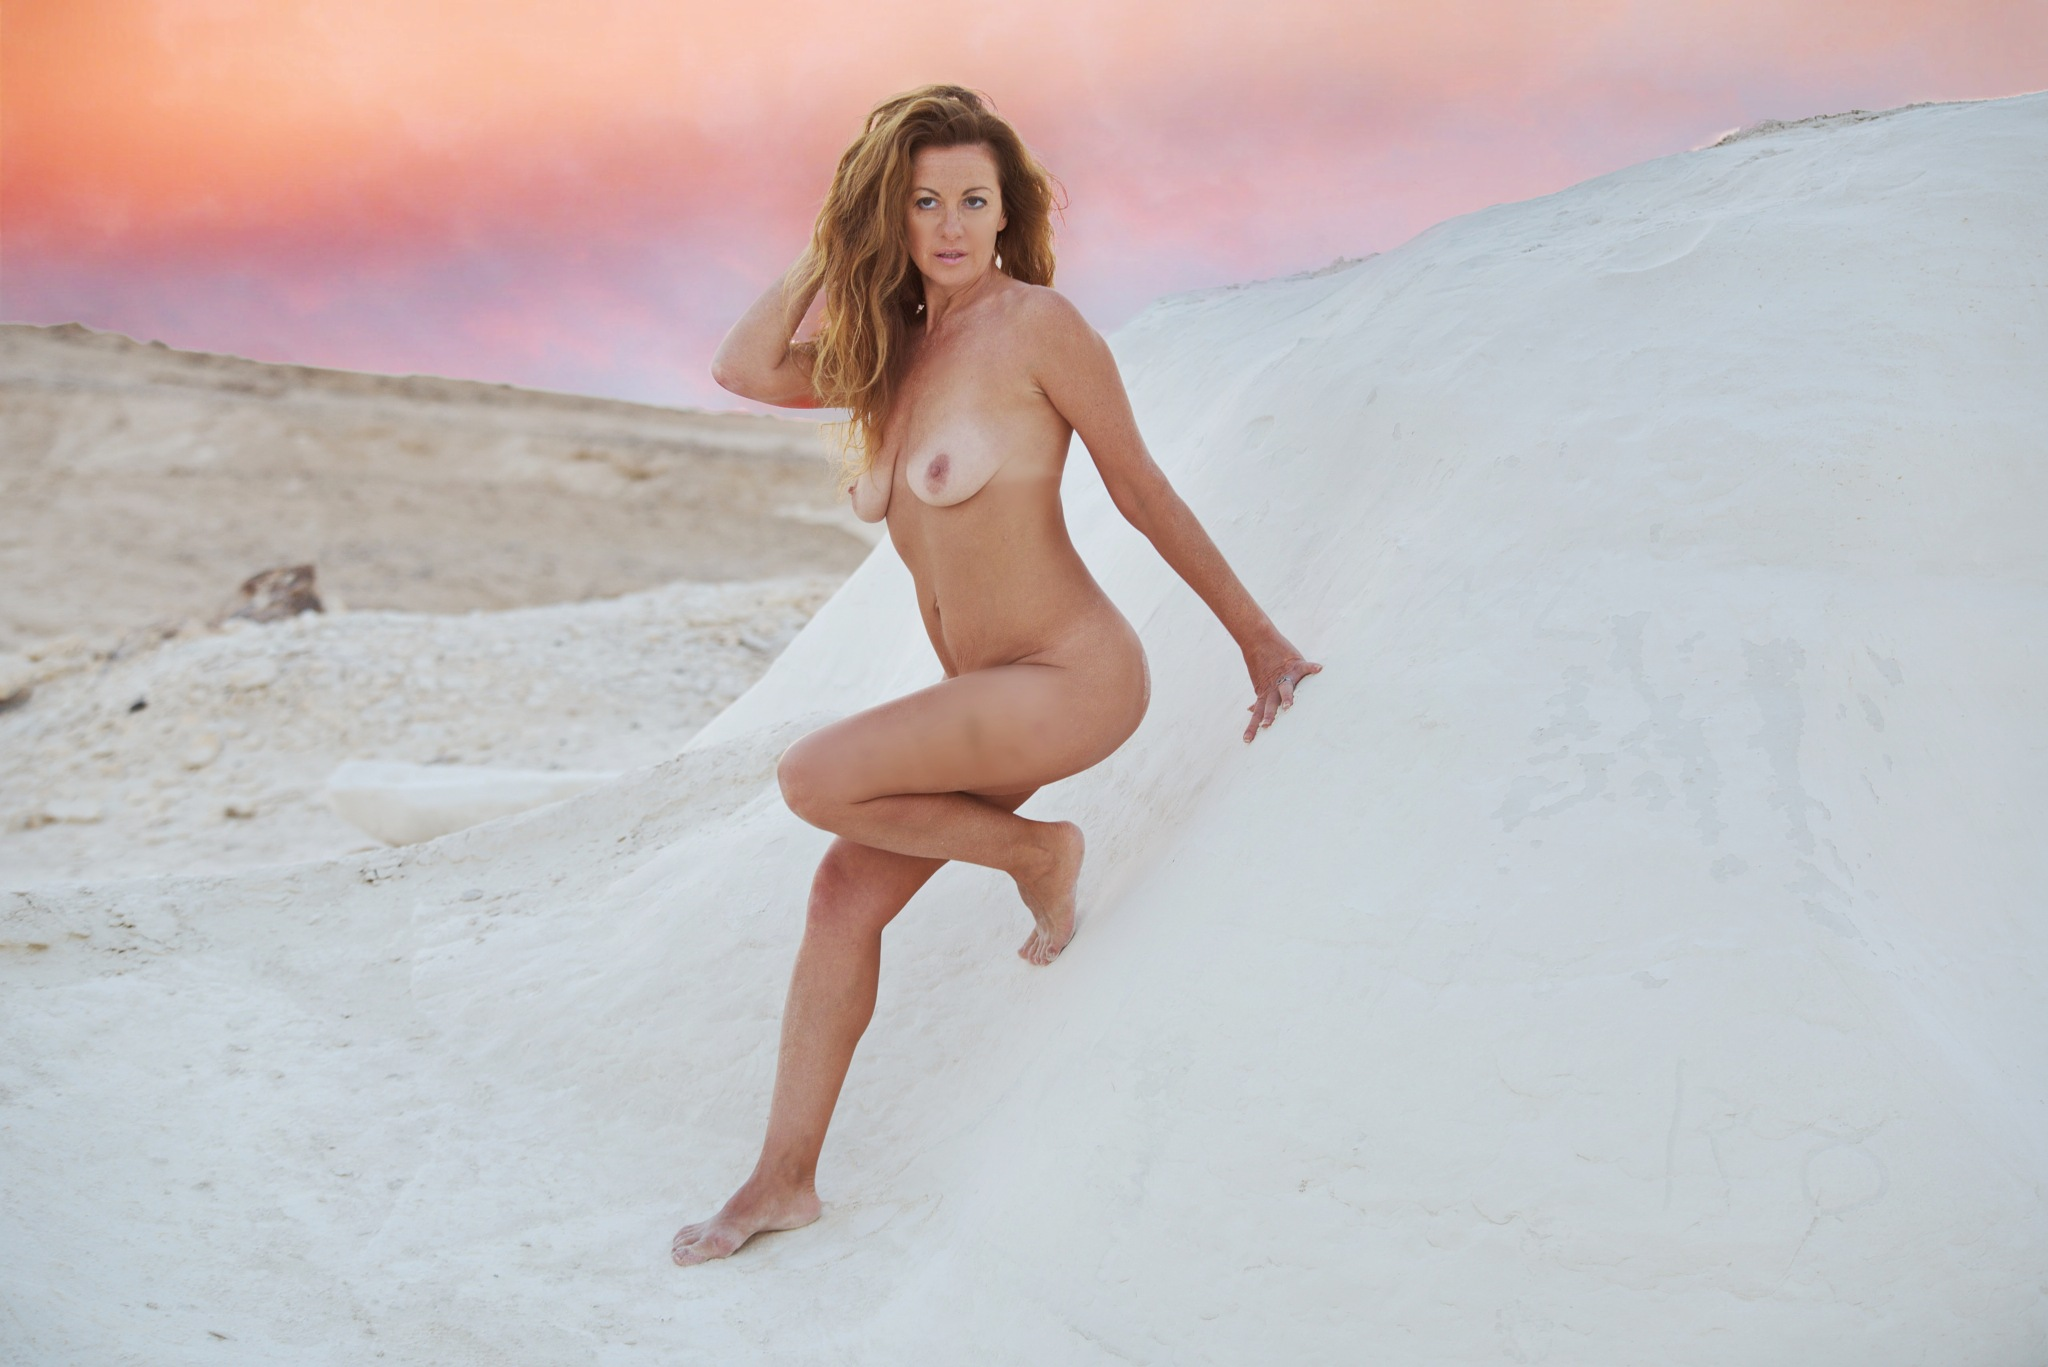 Sunset in the desert by Moti fine art nude photography